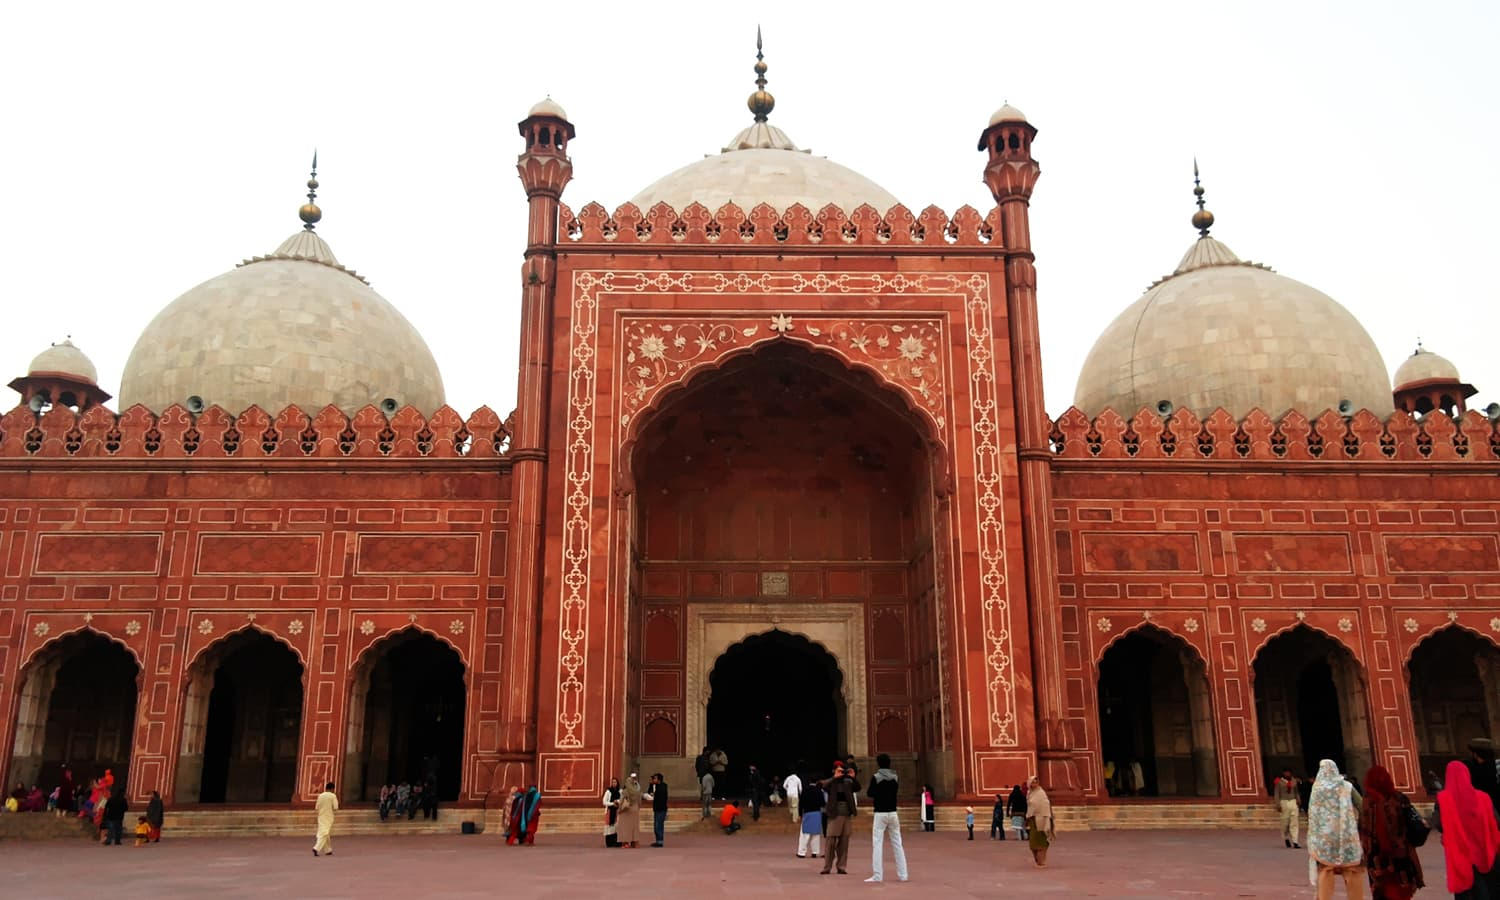 The Badshahi Masjid in Lahore was made in the likeness of Delhi's Jama Masjid. Photo: Kamran Aslam/Wikimedia Commons.